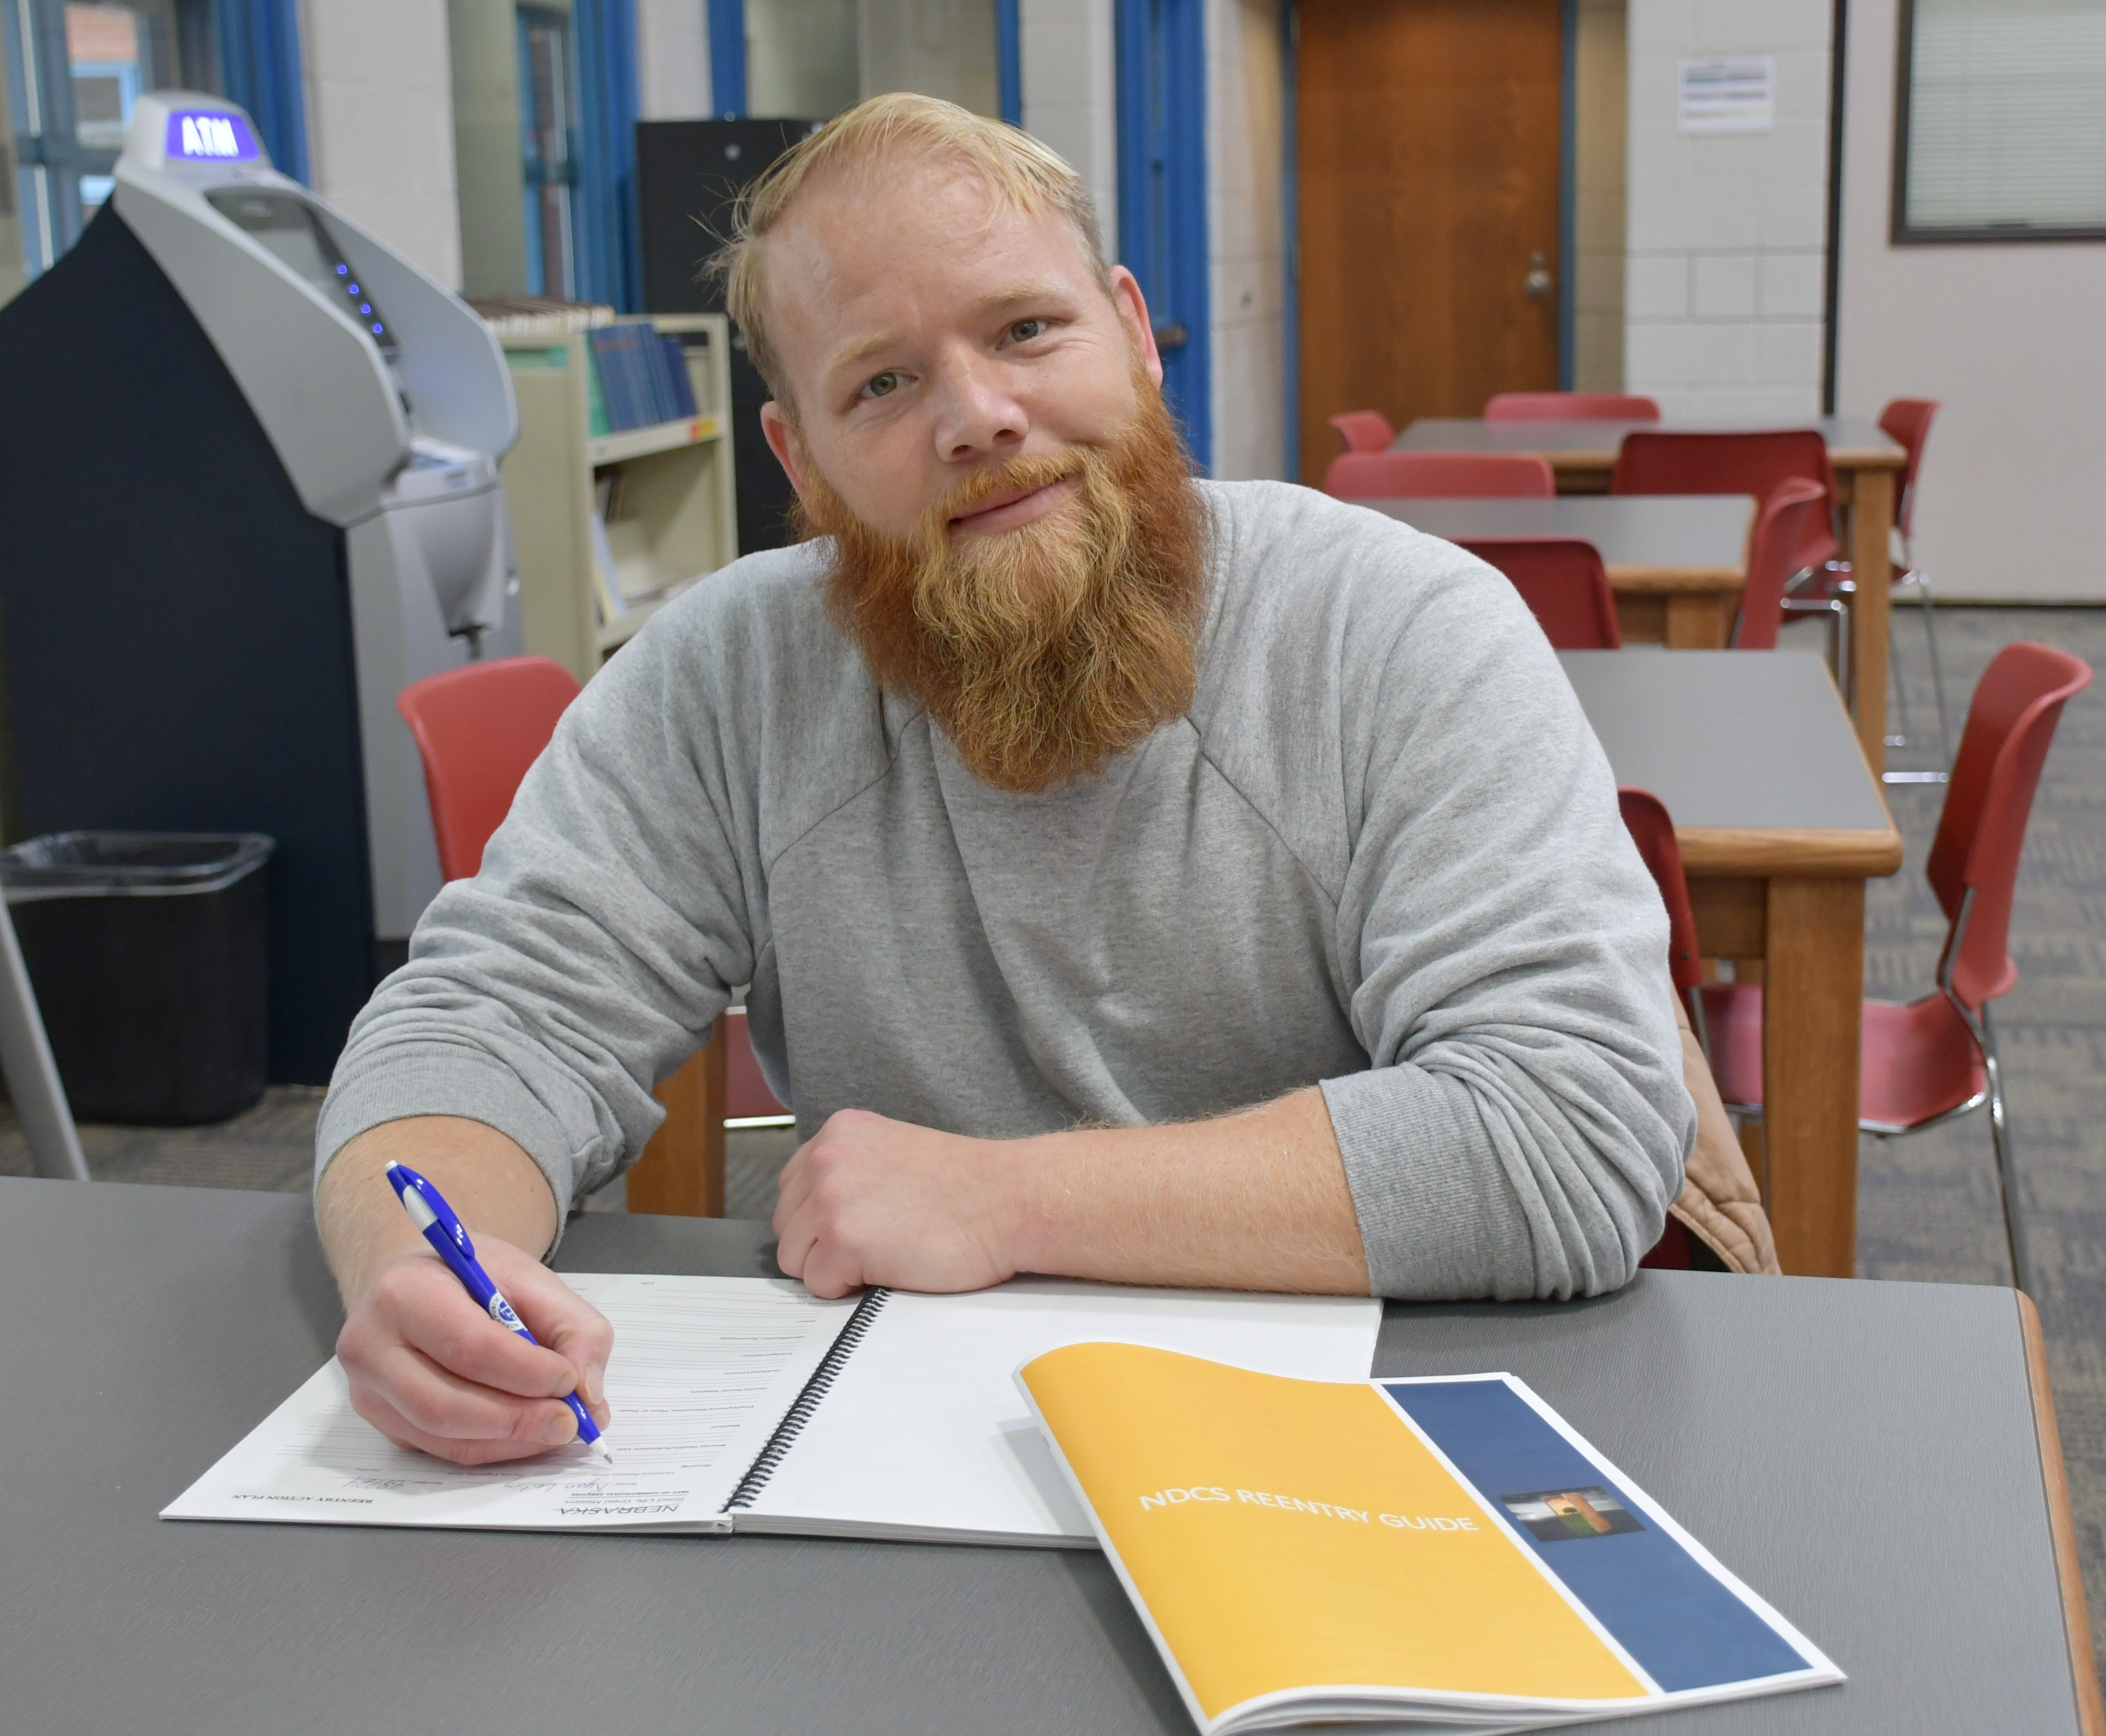 """Ryan Leiting writes in a workbook at Community Corrections Center-Lincoln. """"Reentry gives us hope for the future,"""" he said. """"These guides and workbooks give us that opportunity."""" (Courtesy NDCS)"""